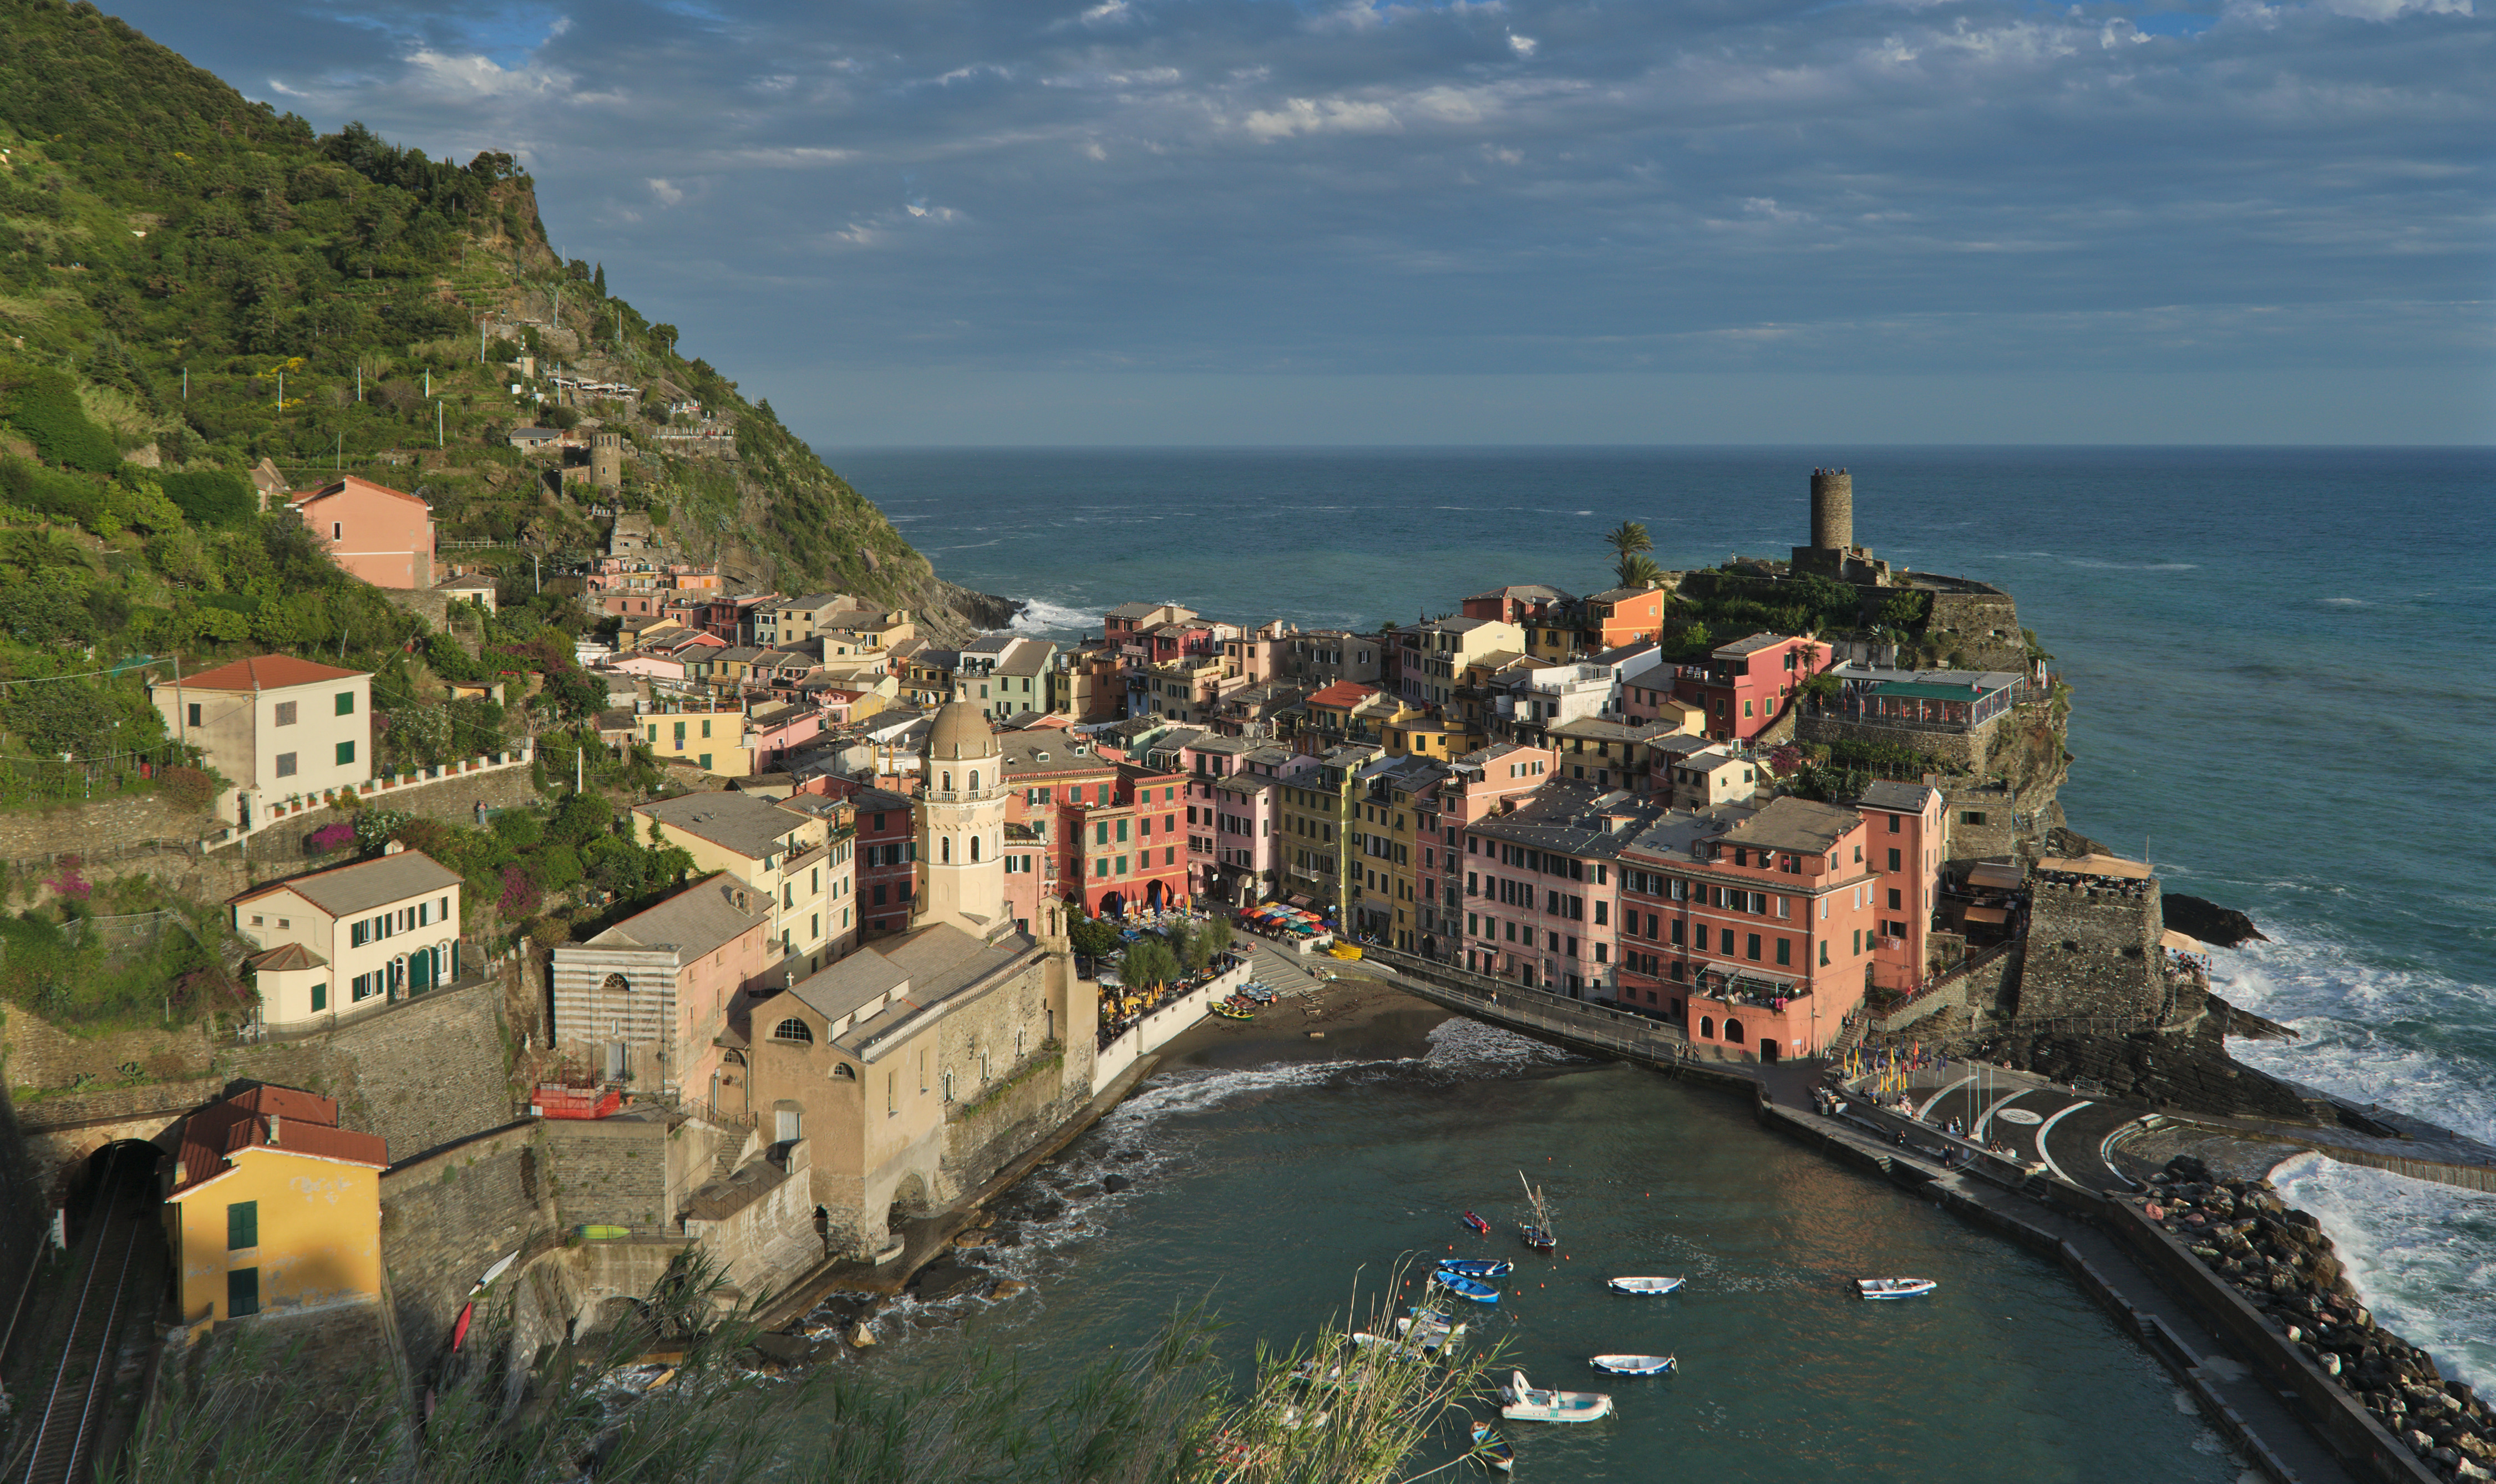 Vernazza Wikipedia